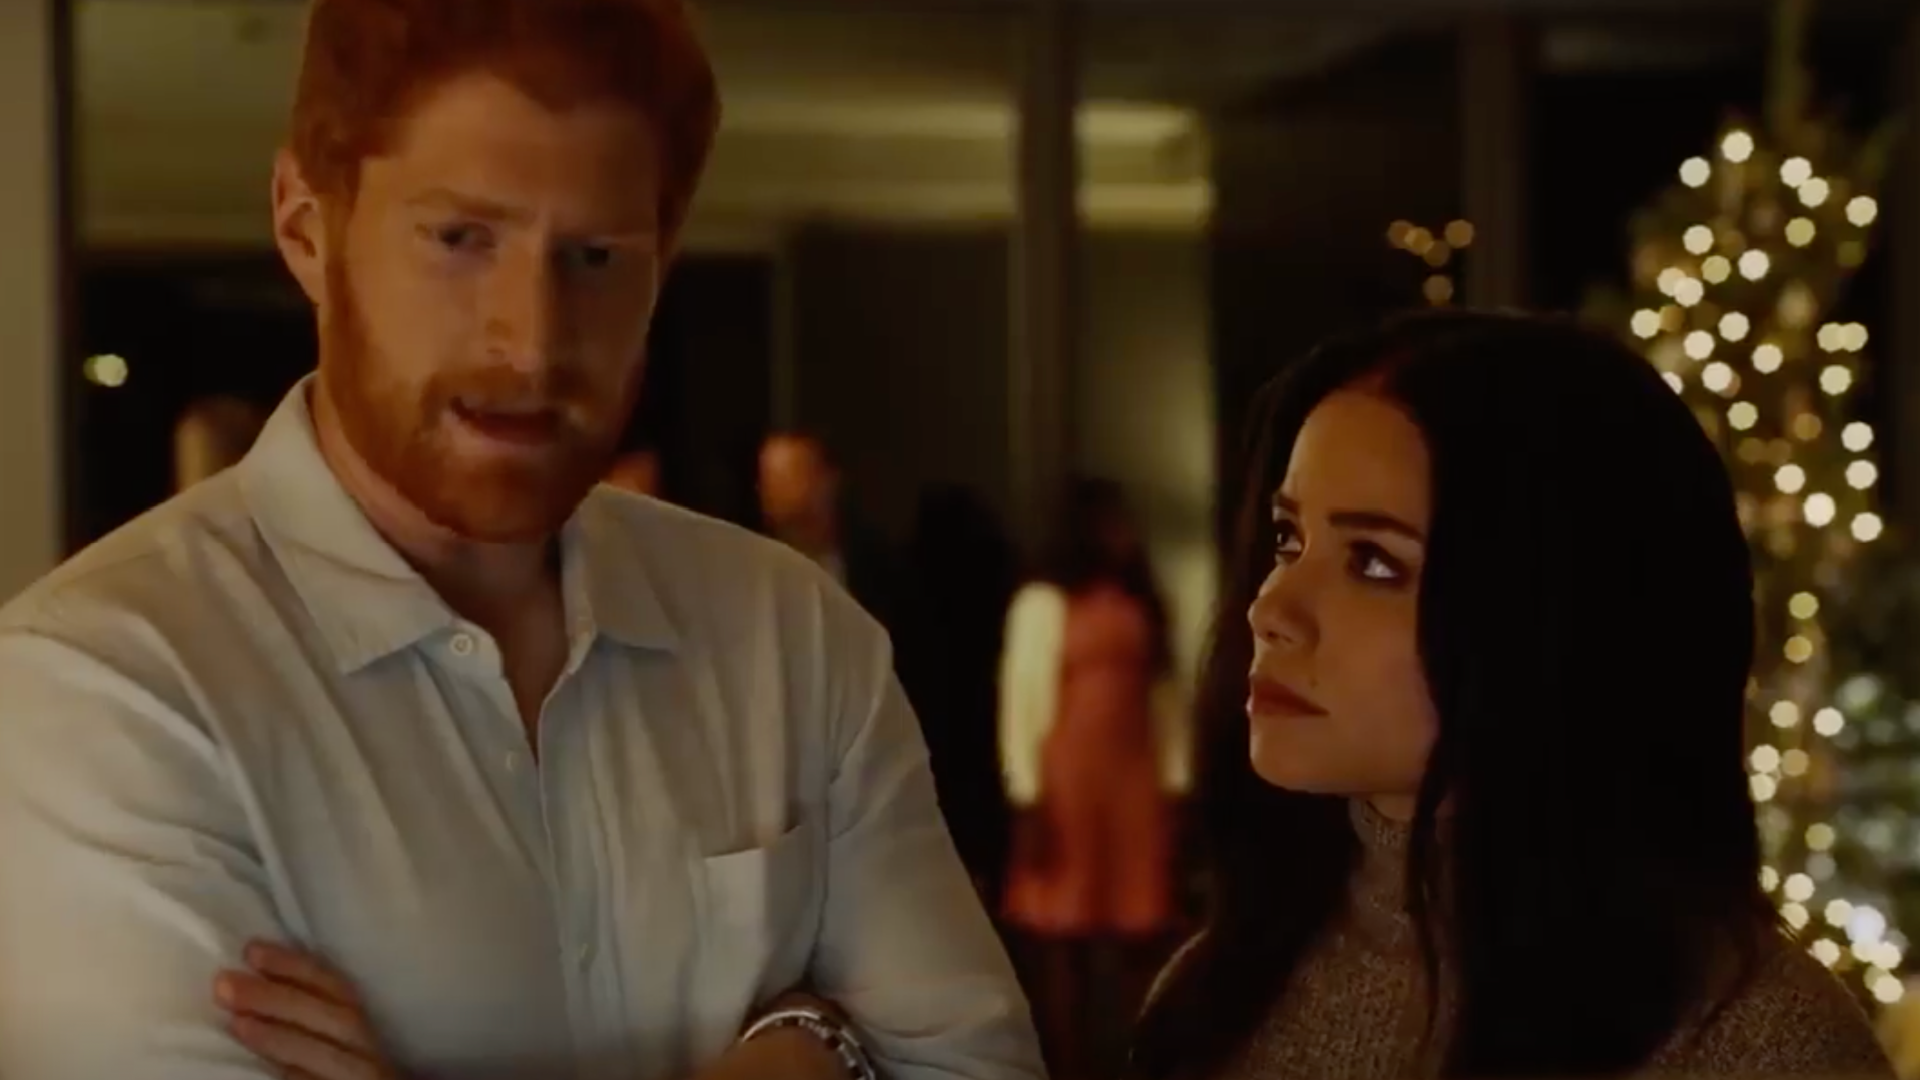 New film about Harry and Meghan: see what the trailer reveals